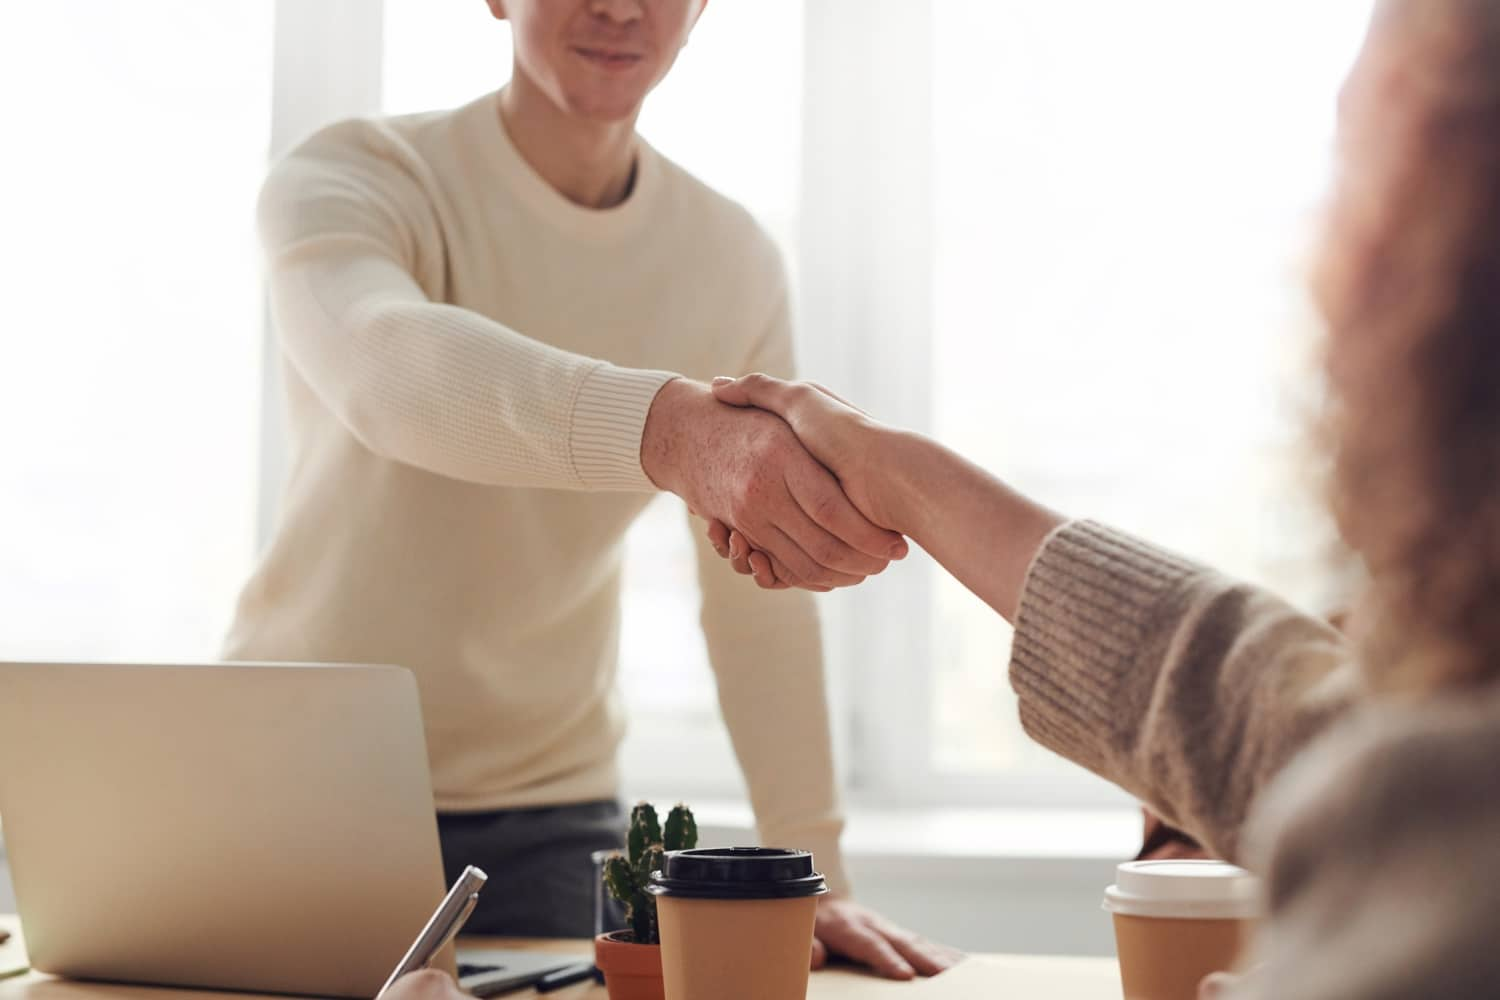 Handshake with your first non-family employee